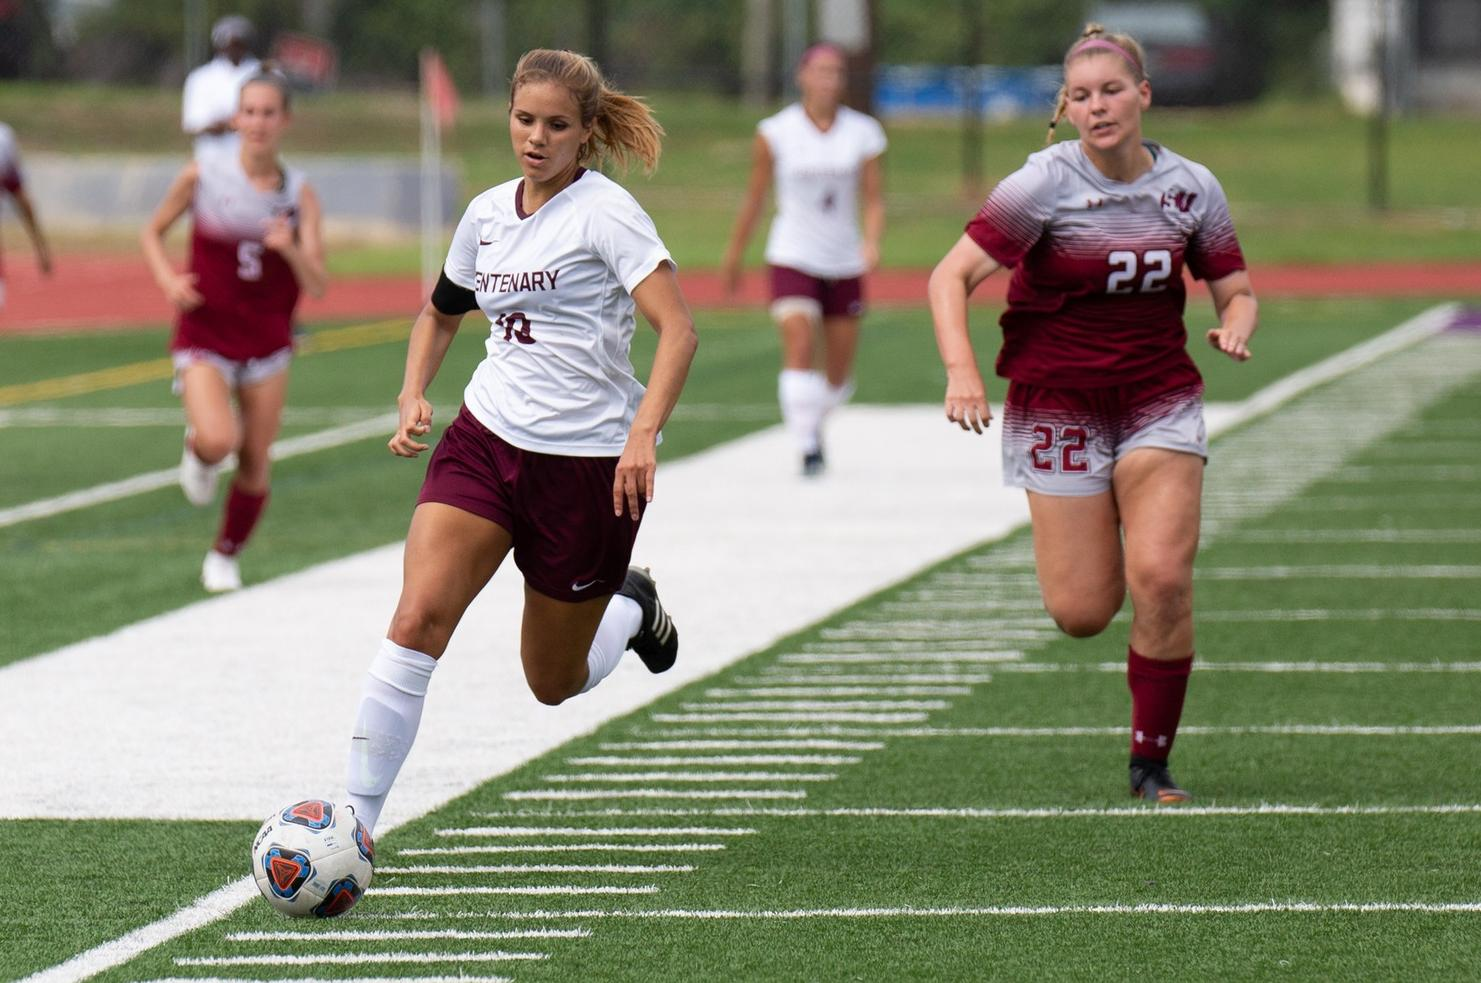 Junior Kyra Montes named the NCAA Division III Women's Player of the Week by the United Soccer Coaches (Photo courtesy of Curt Youngblood).